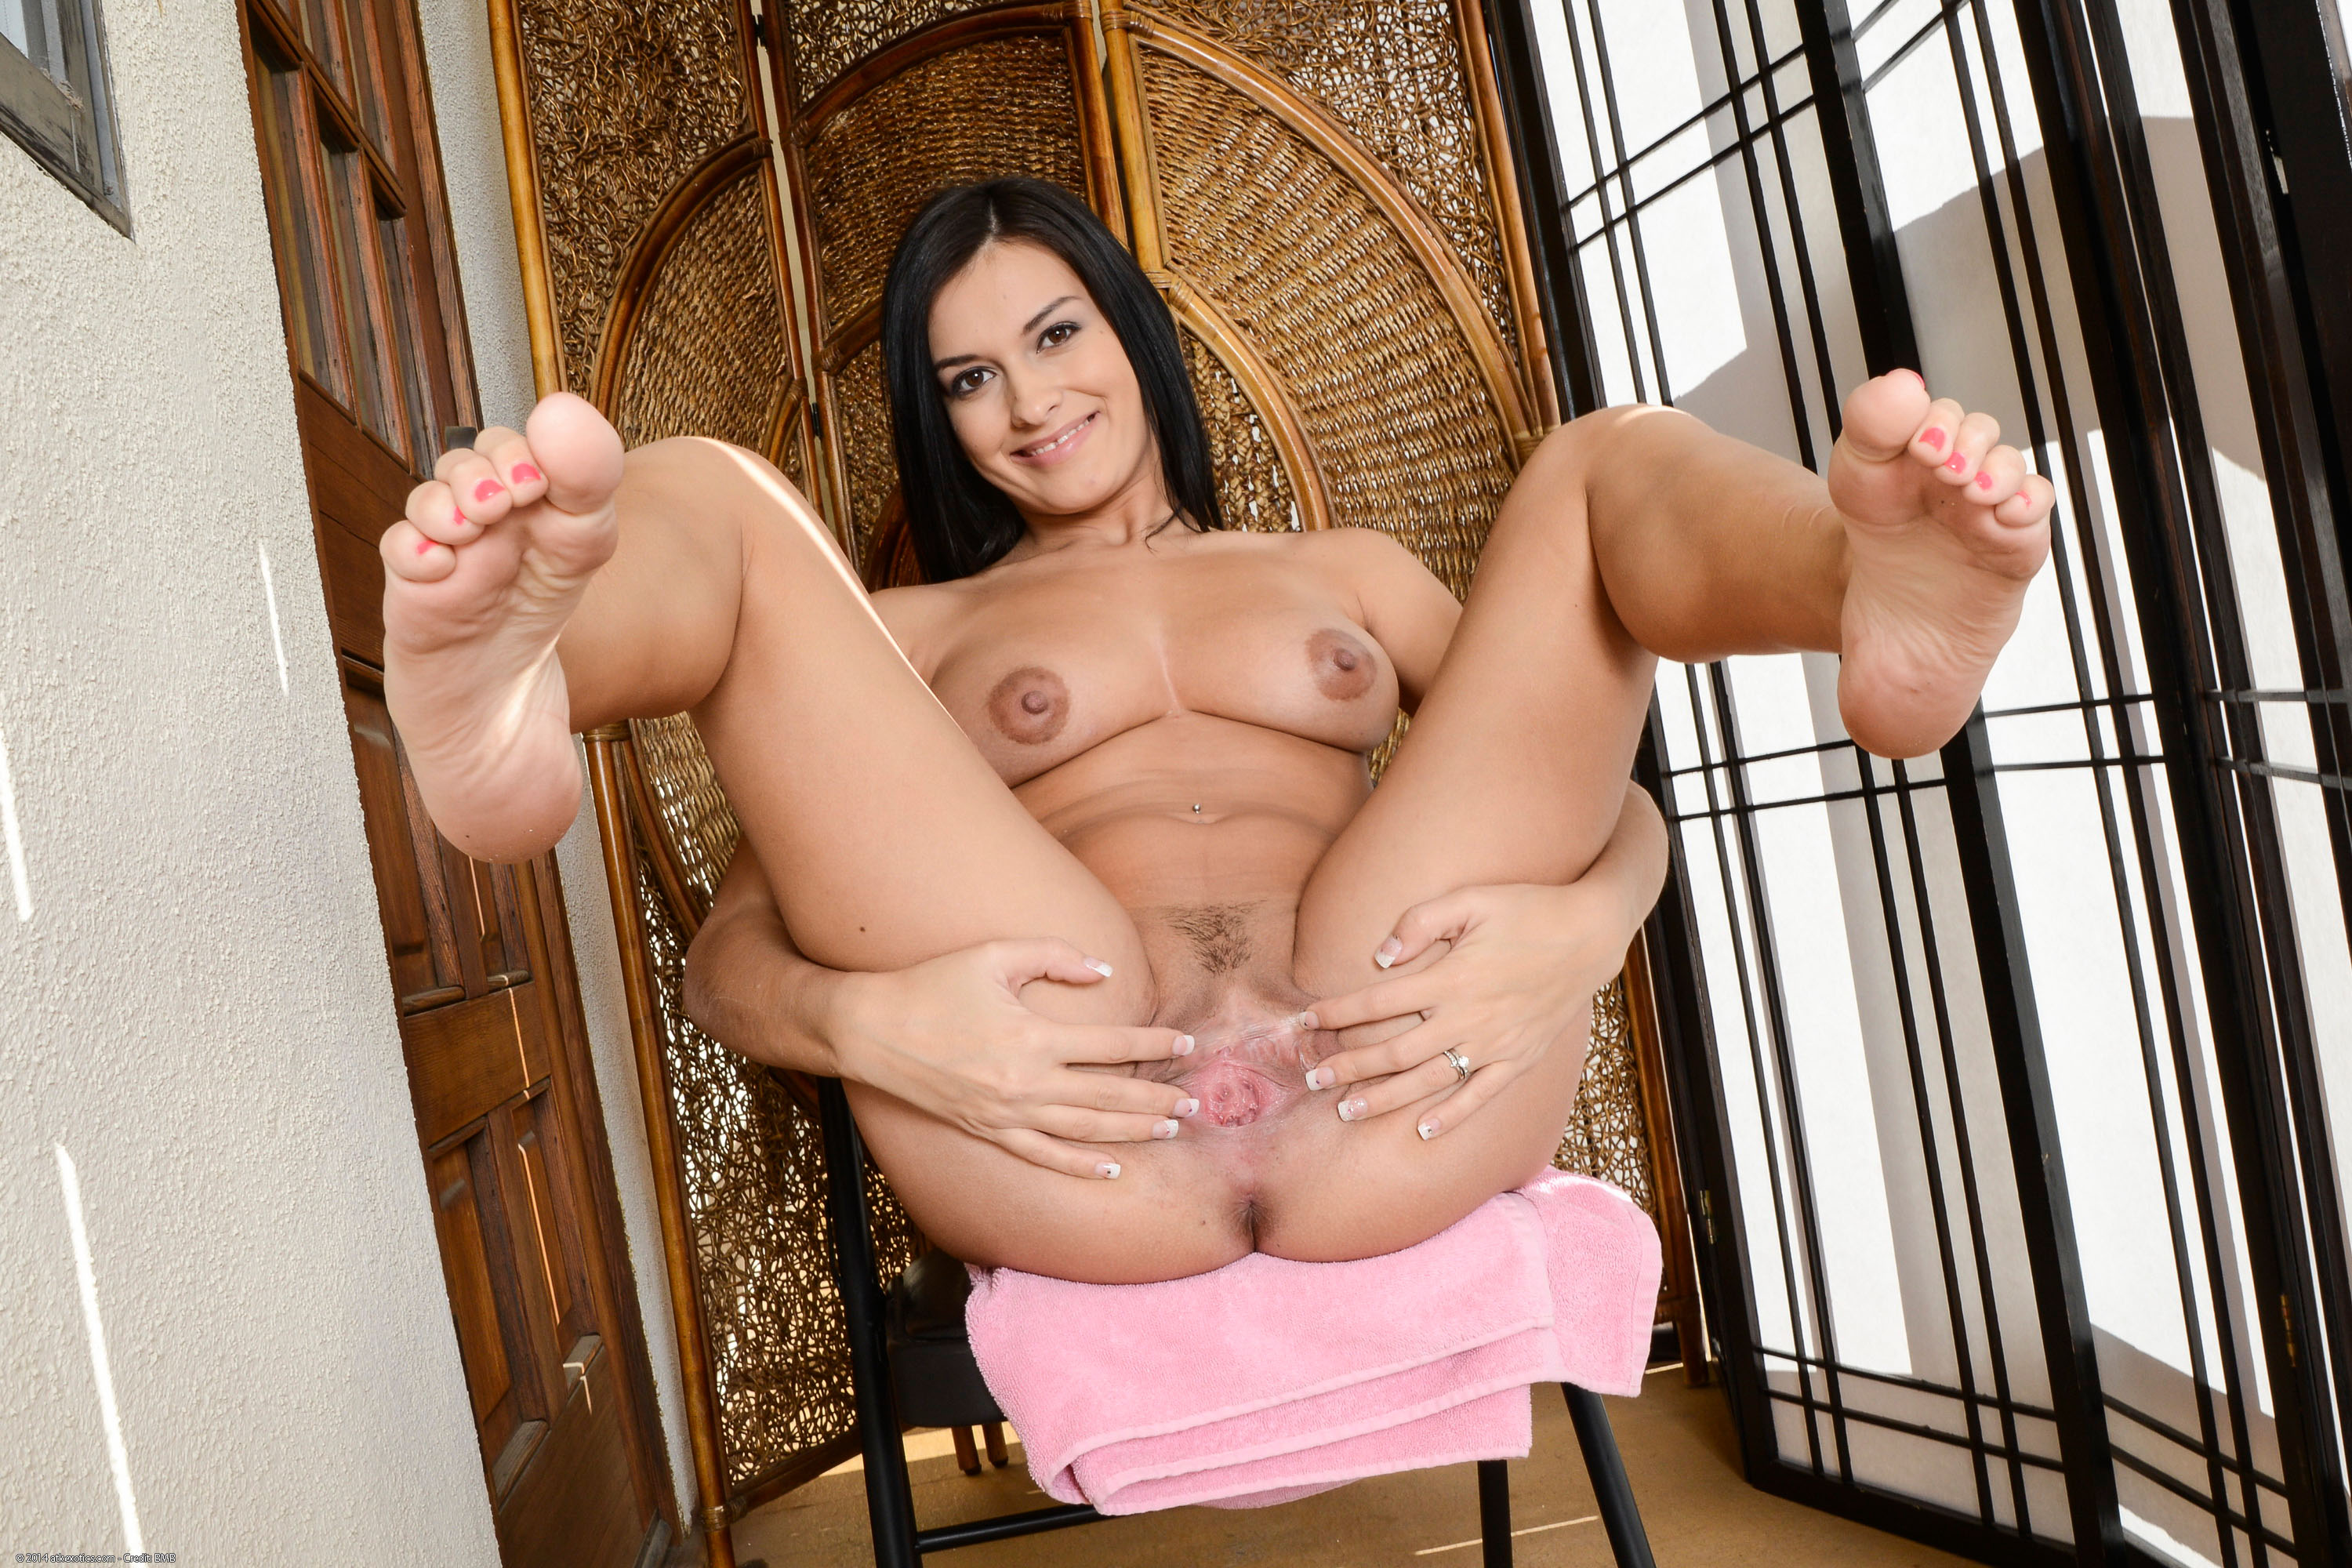 Download the zip file of this hot photoset #15